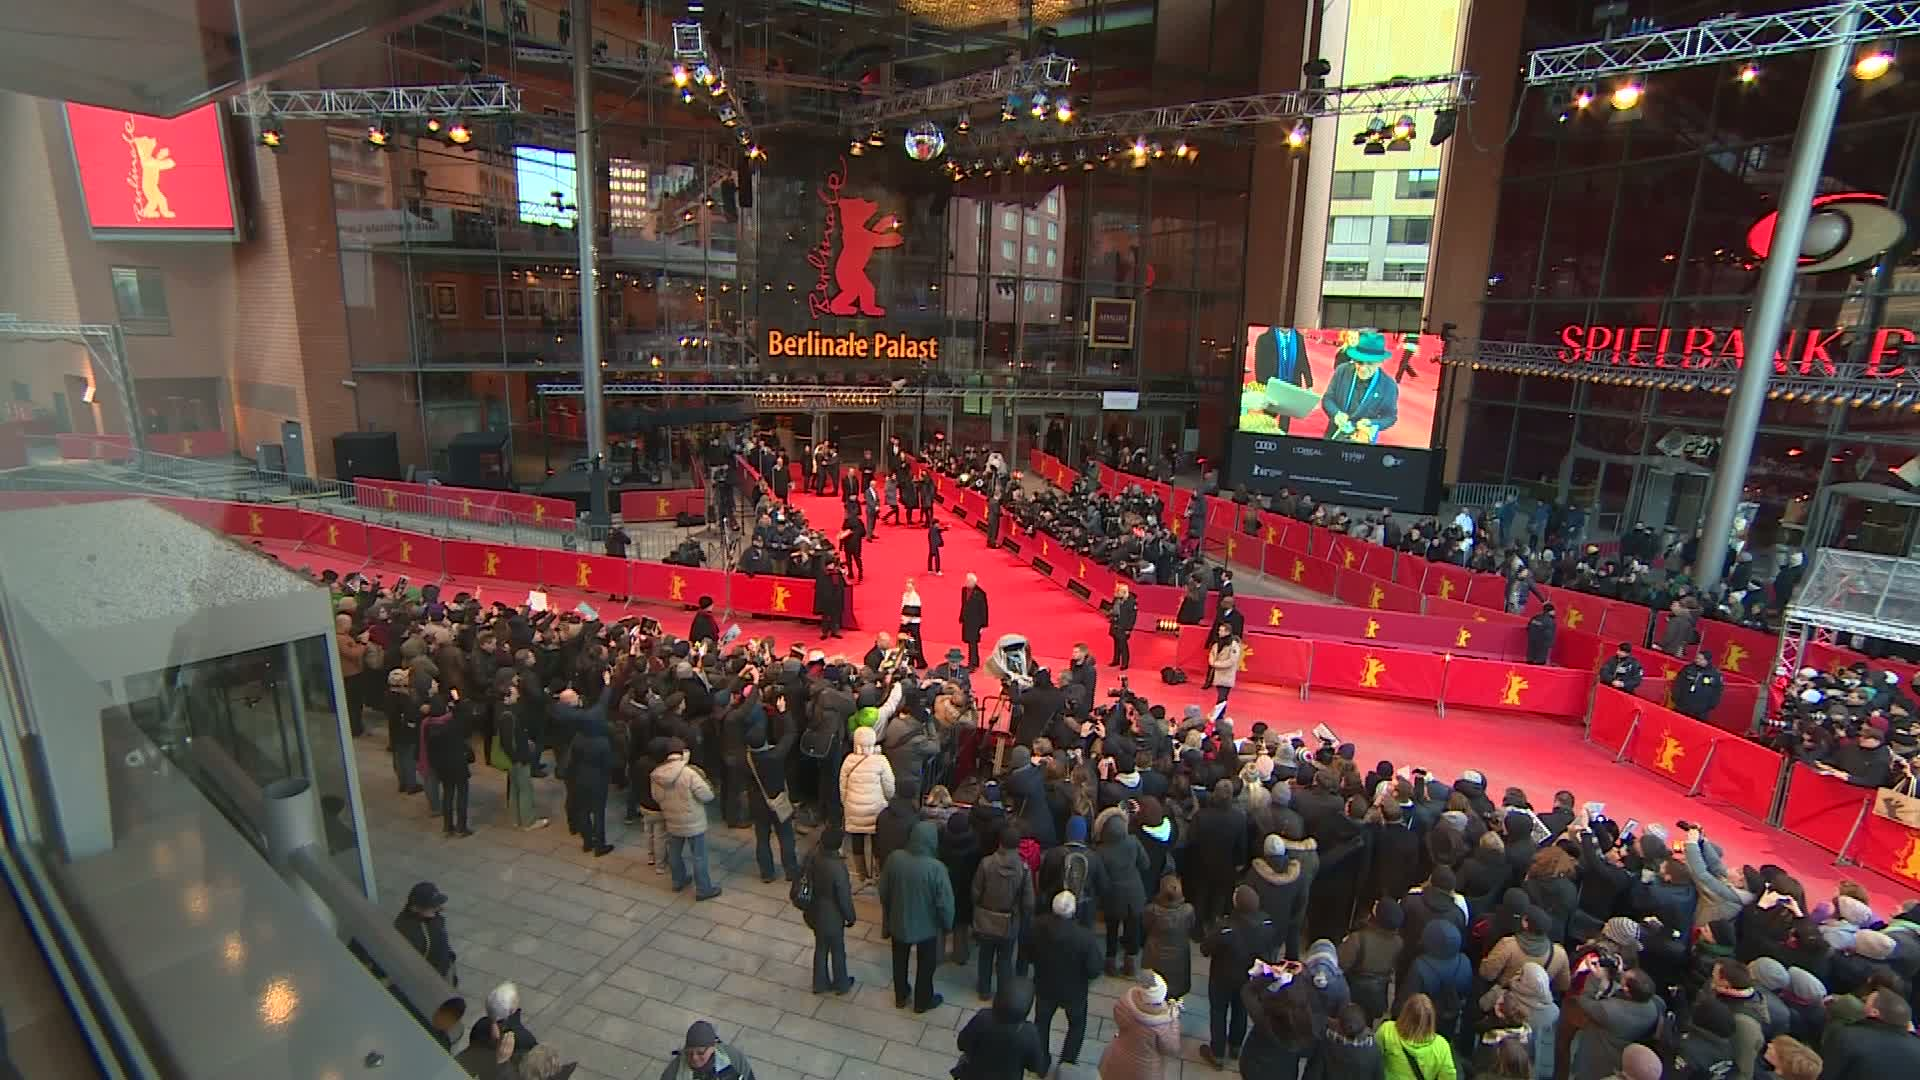 Berlinale 2015: Die Highlights in der Audi Berlinale Lounge